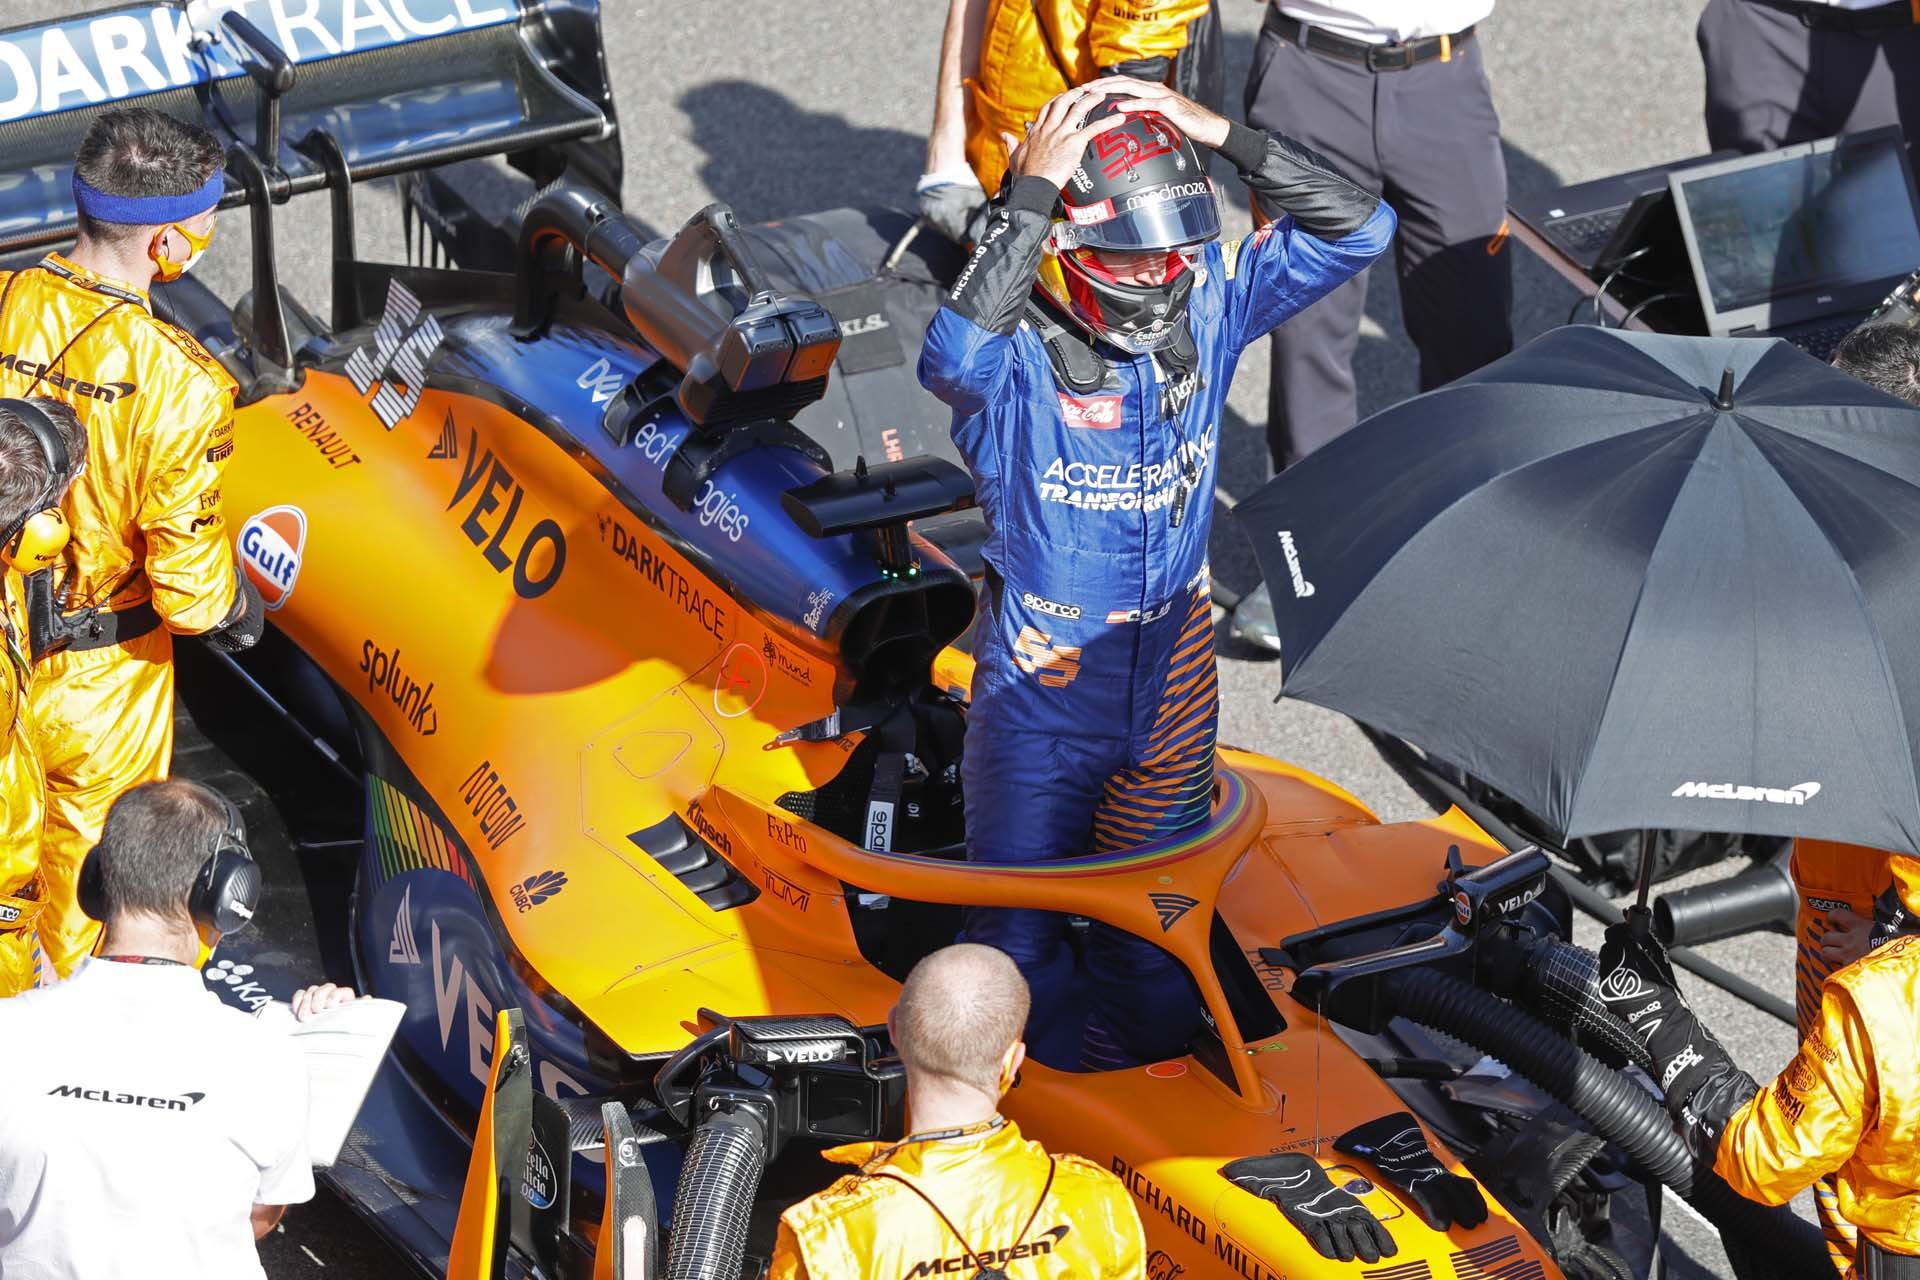 Carlos Sainz, McLaren, on the grid